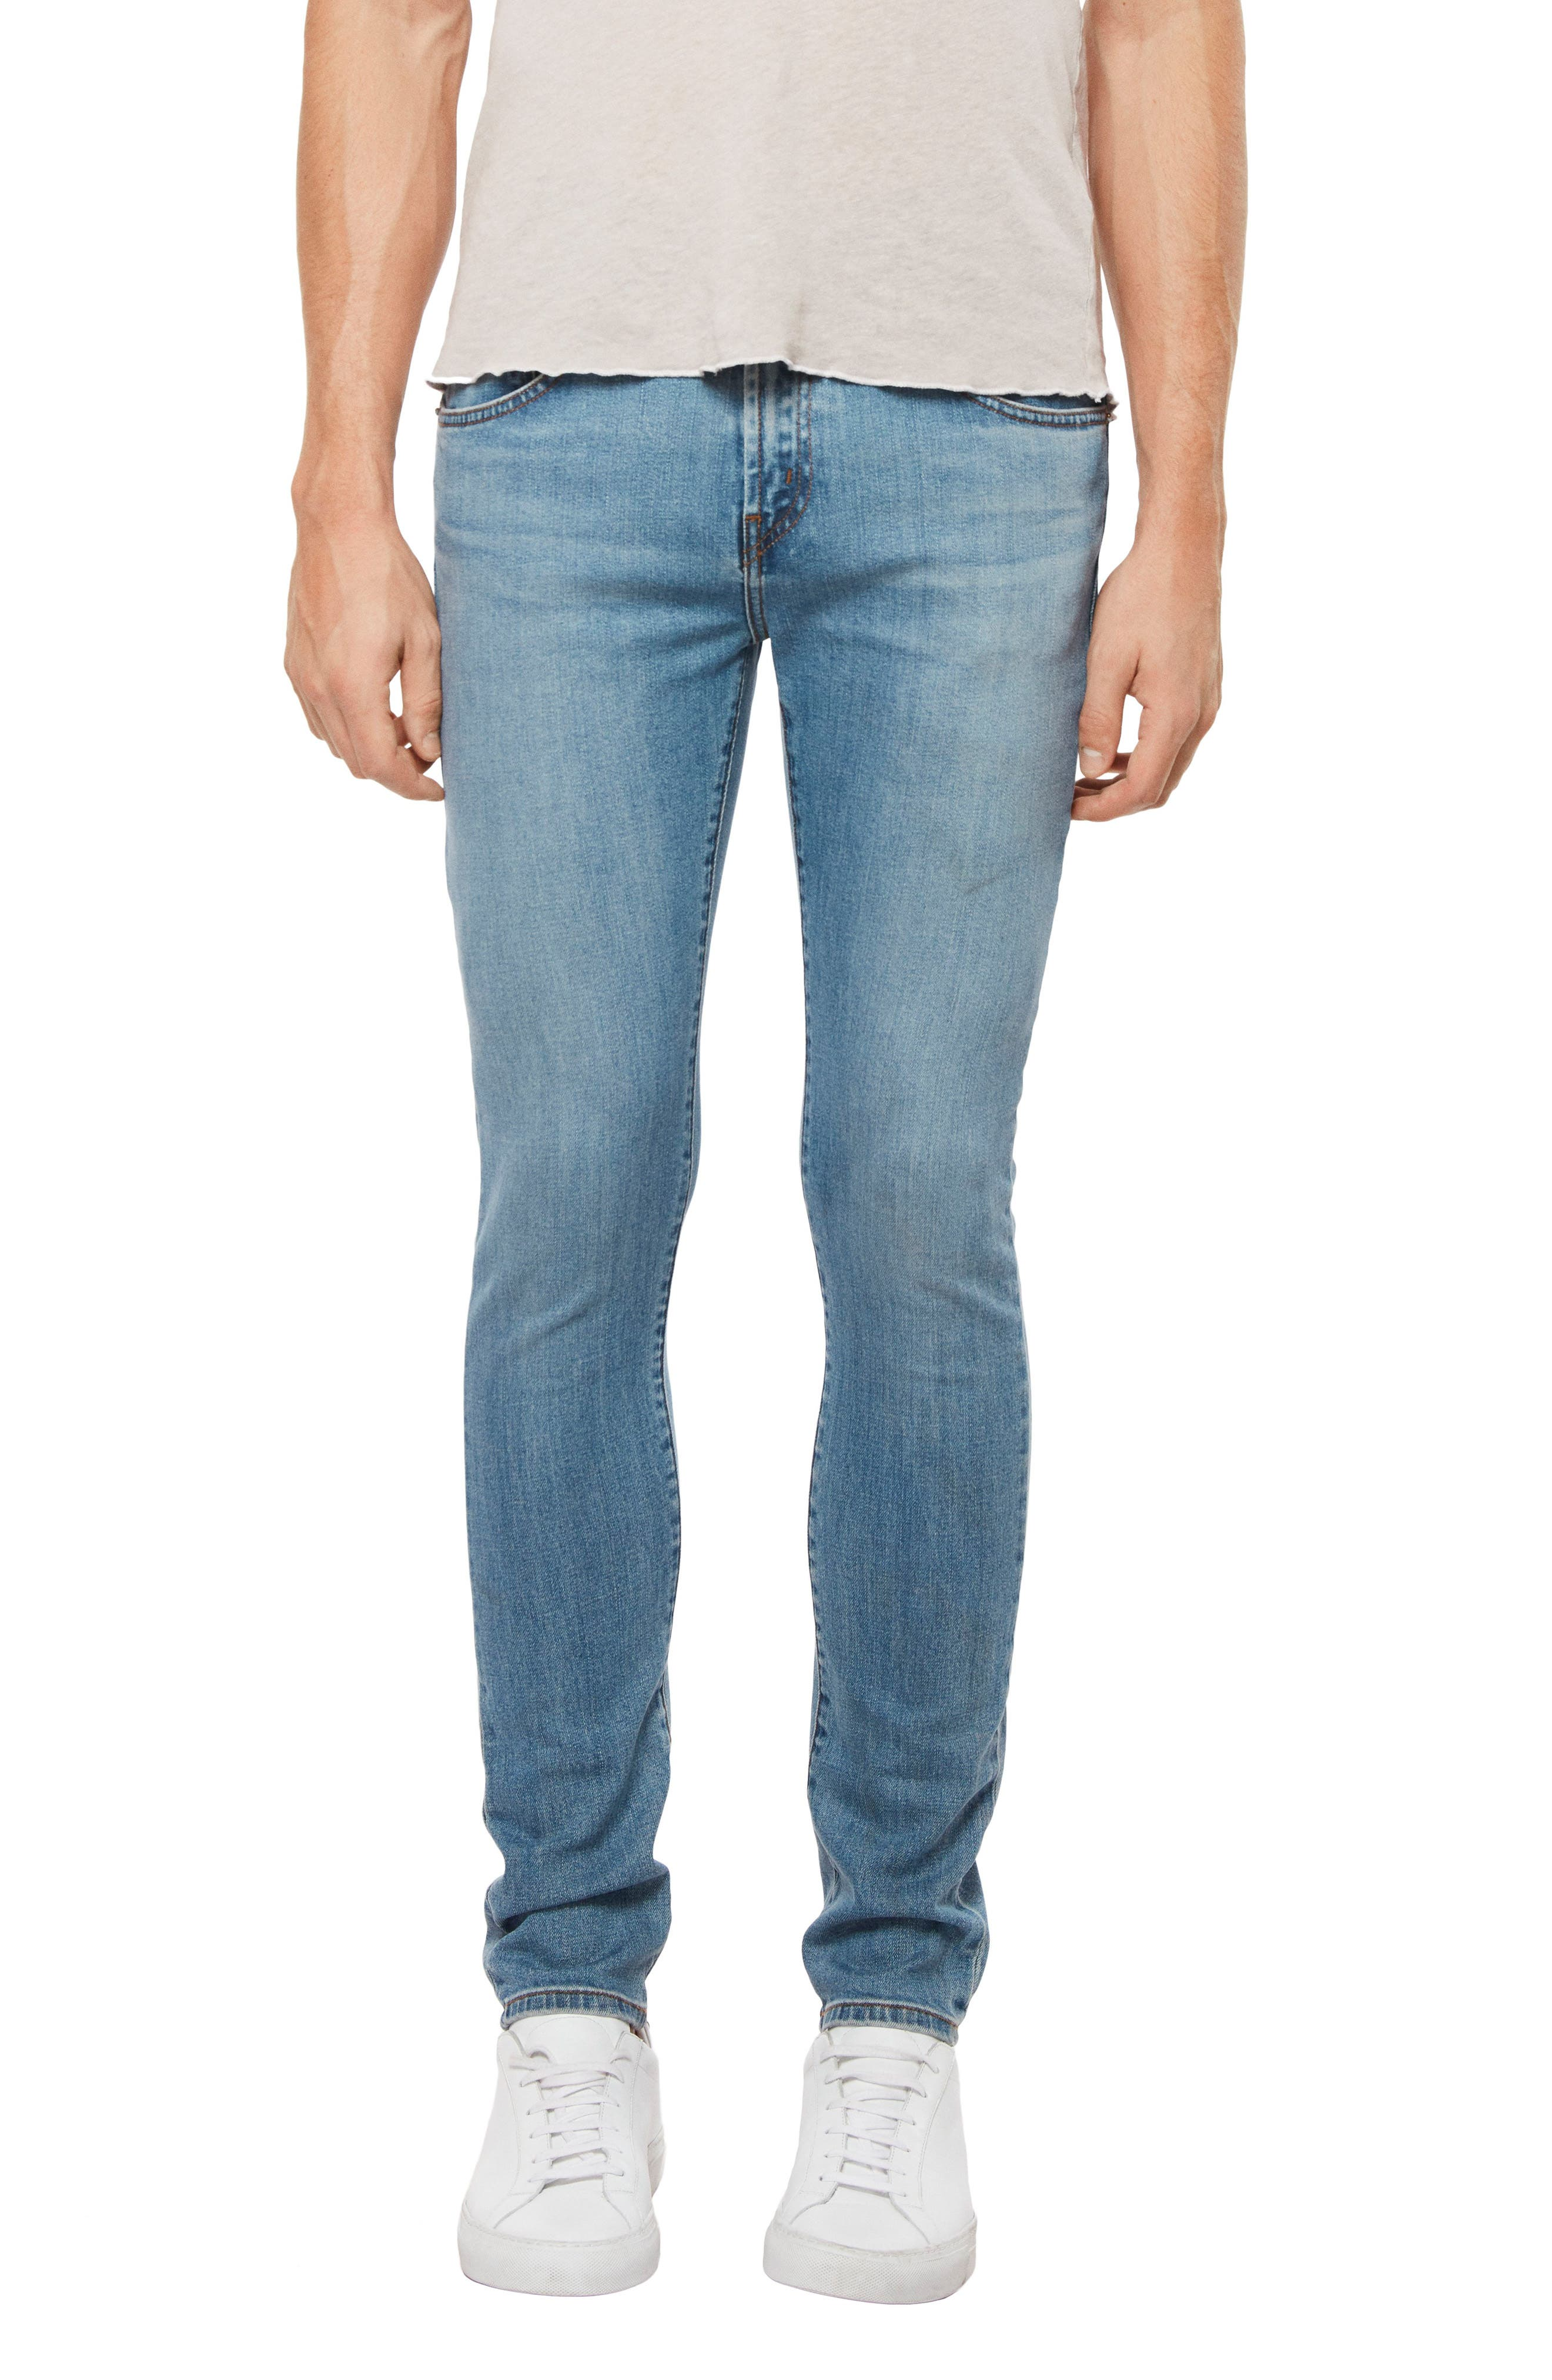 Skinny Fit Jeans,                         Main,                         color, Stagon